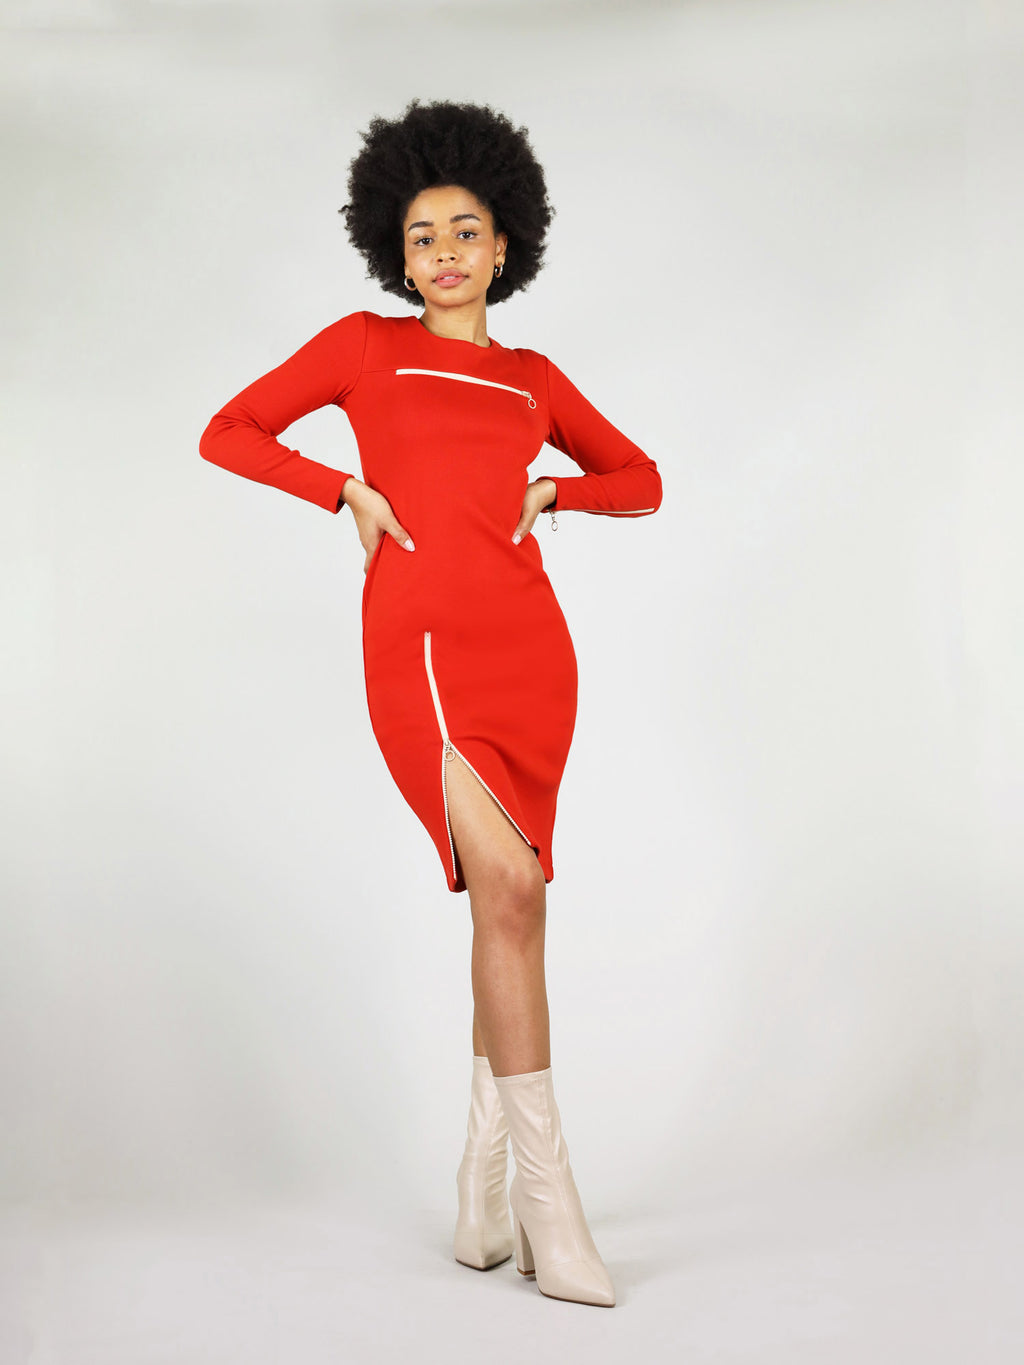 The wicked zipper dress in red has long sleeves with a white zip on the left arm, under knee length and white zip on the right leg that unzips, revealing the leg. Also has tight body con fit.